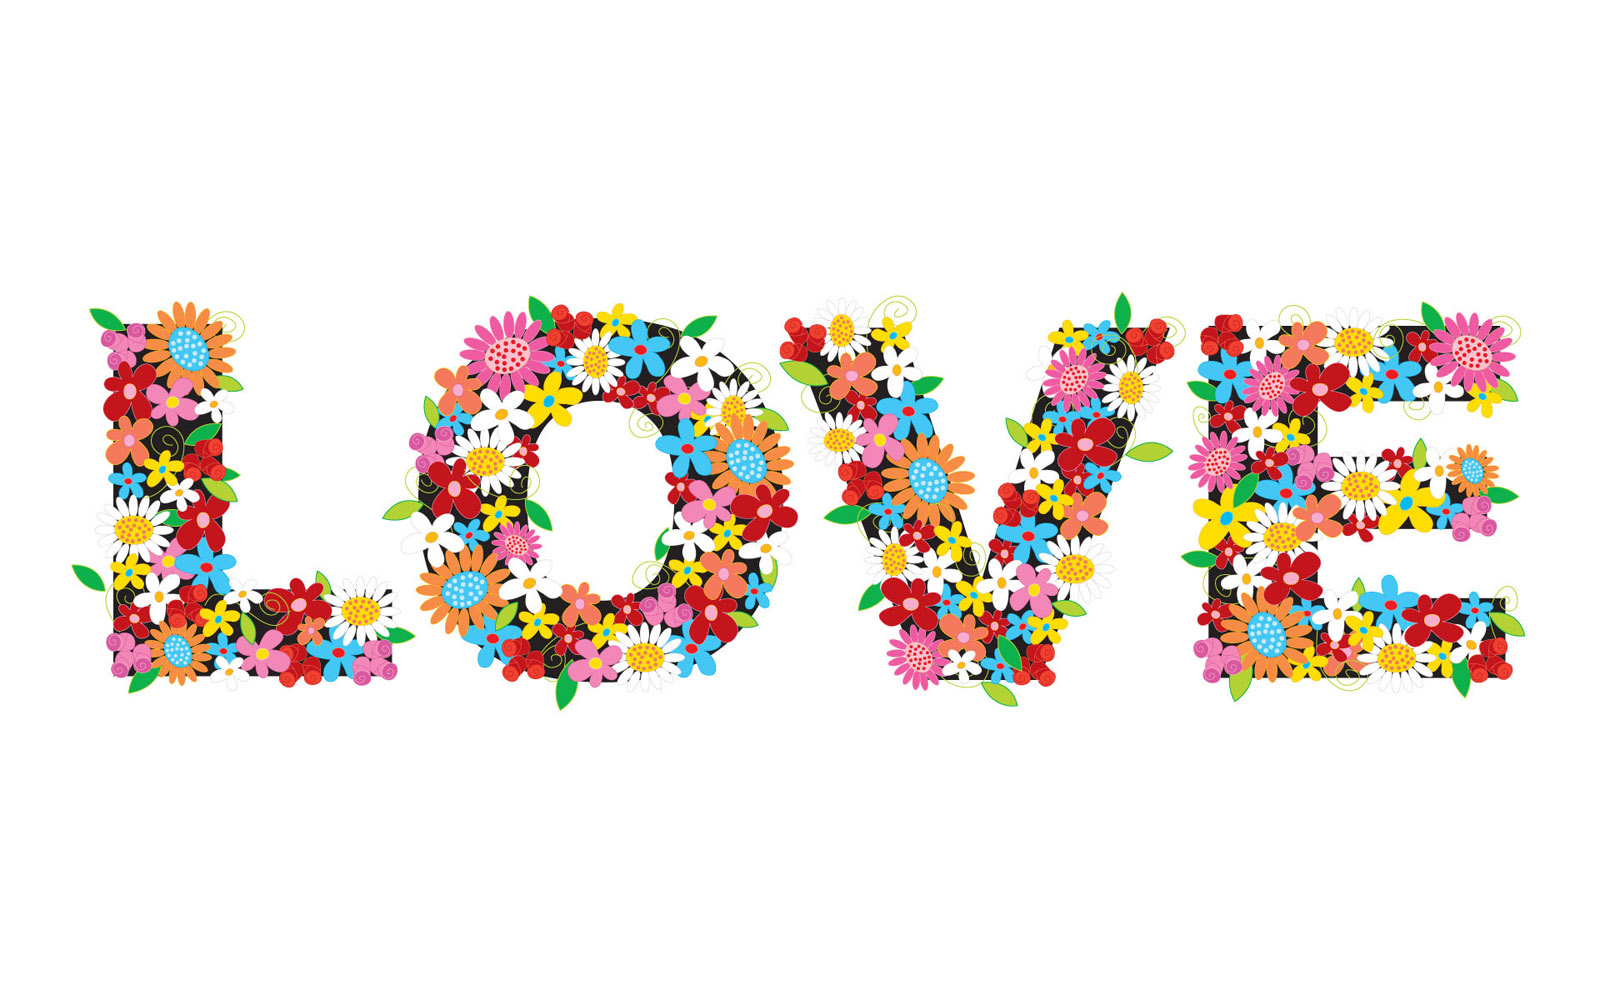 Latest Love Wallpaper For Fb : Amazing Wallpapers: New love photos wallpaper, new love wallpaper